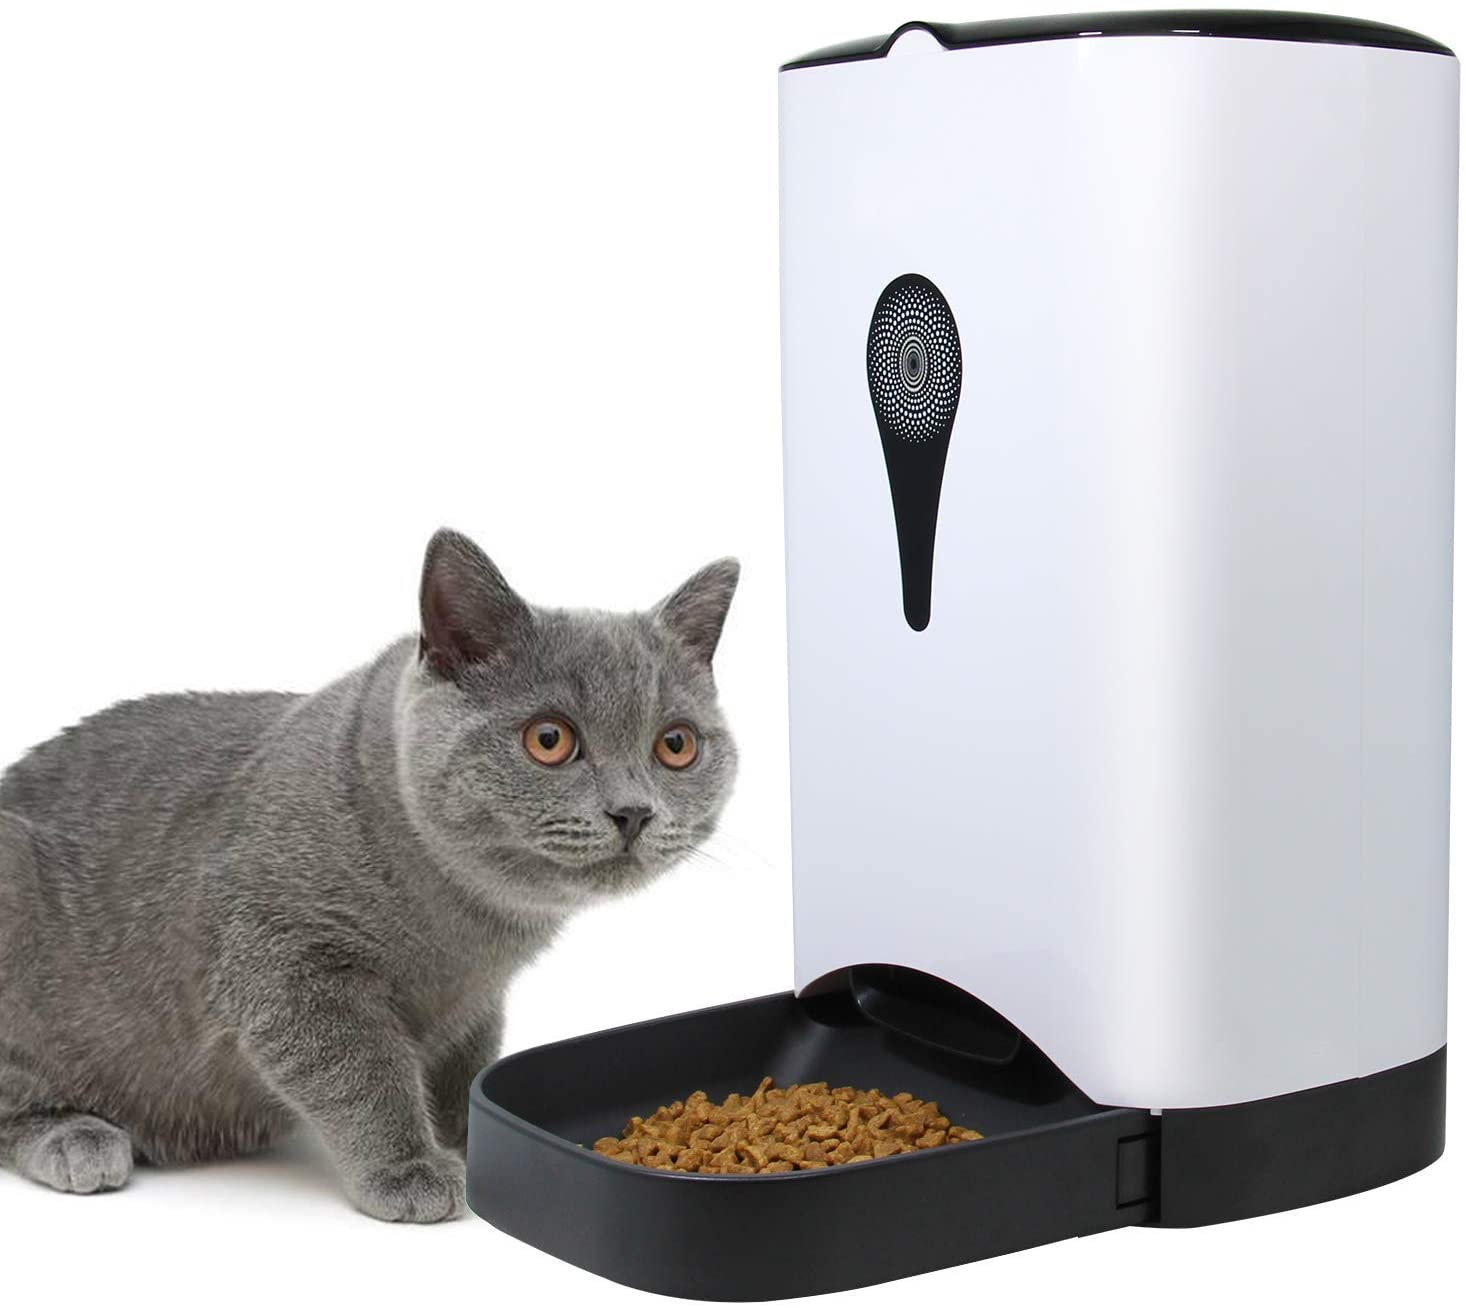 4.5L Automatic Cat Feeder, Smart Dog Food Dispenser, Voice Recording Timer Programmable Up to 4 Meals A Day, LCD Display and Portion Control